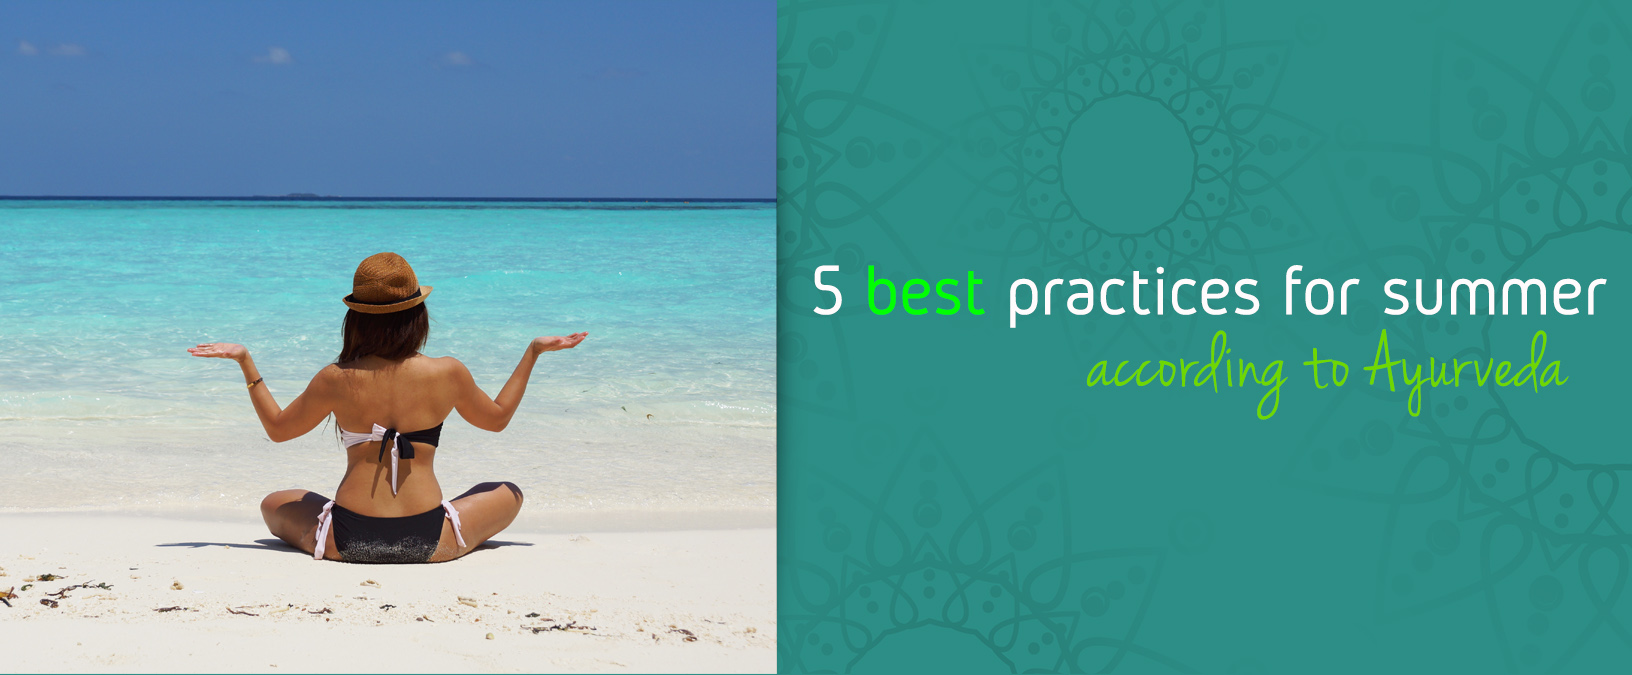 5 best practices for summer according to Ayurveda